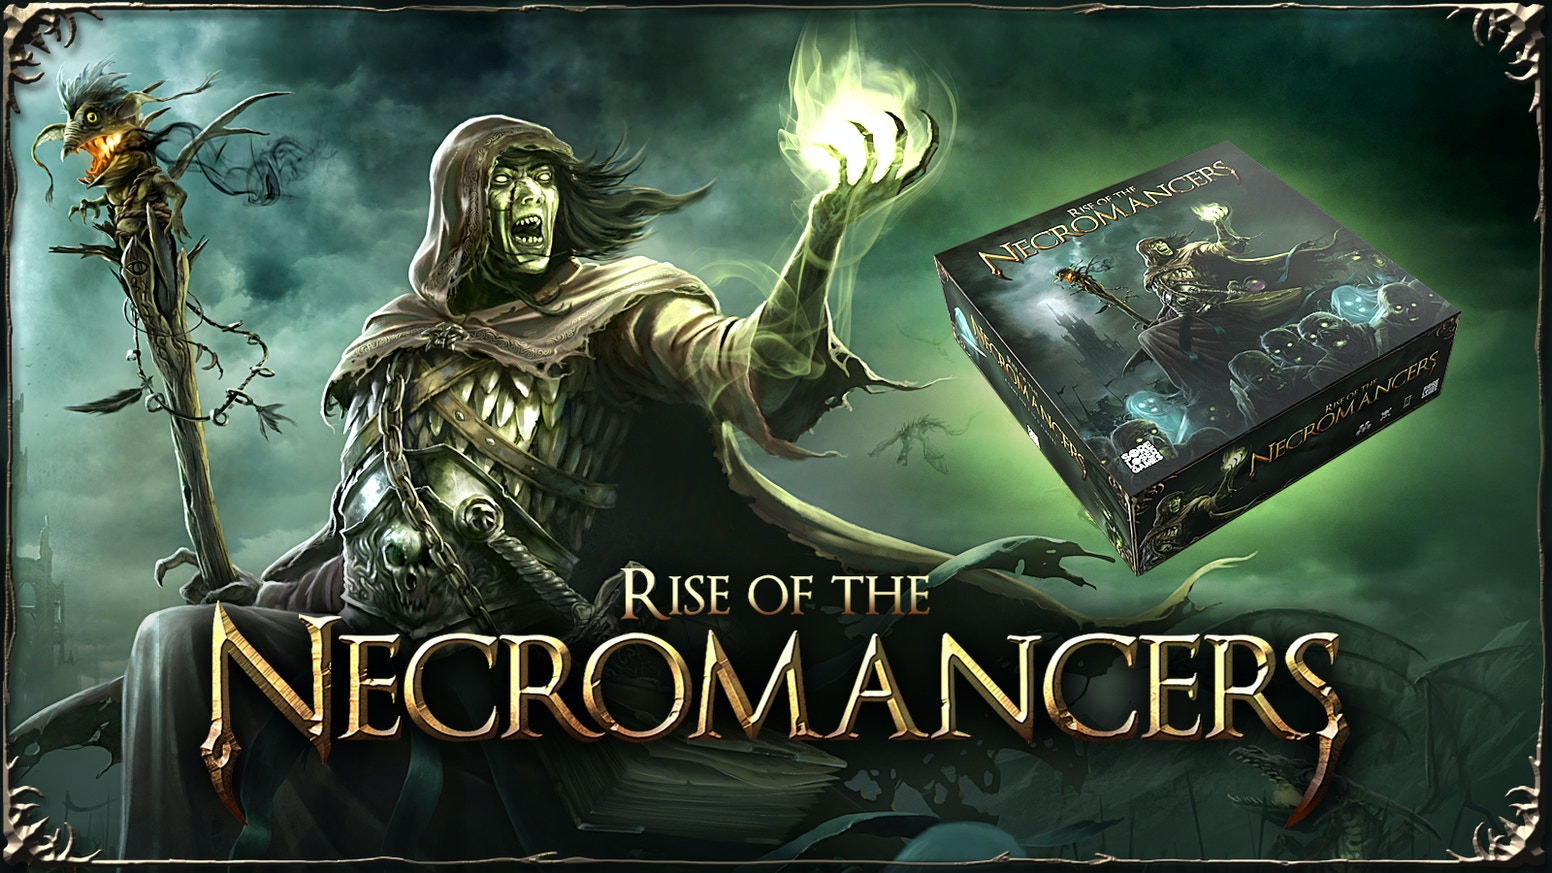 A strategy boardgame for 2-5 players, where each player controls a Necromancer struggling for absolute dominance.